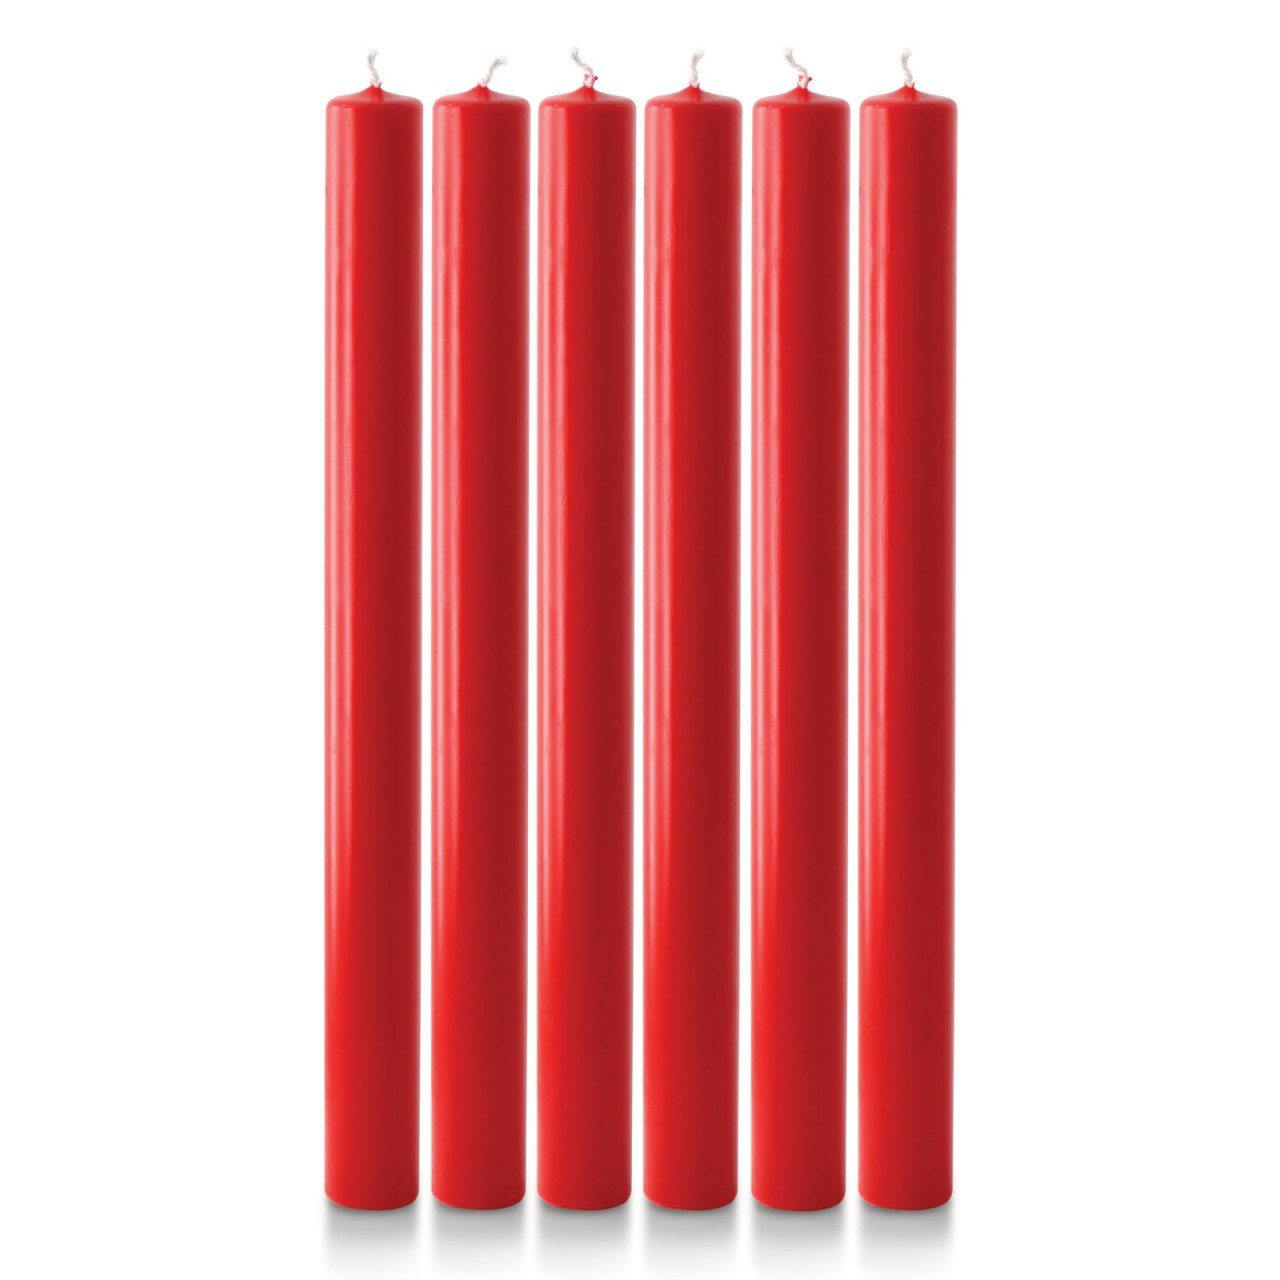 12 x 1 advent candles 6 red grace church supplies. Black Bedroom Furniture Sets. Home Design Ideas